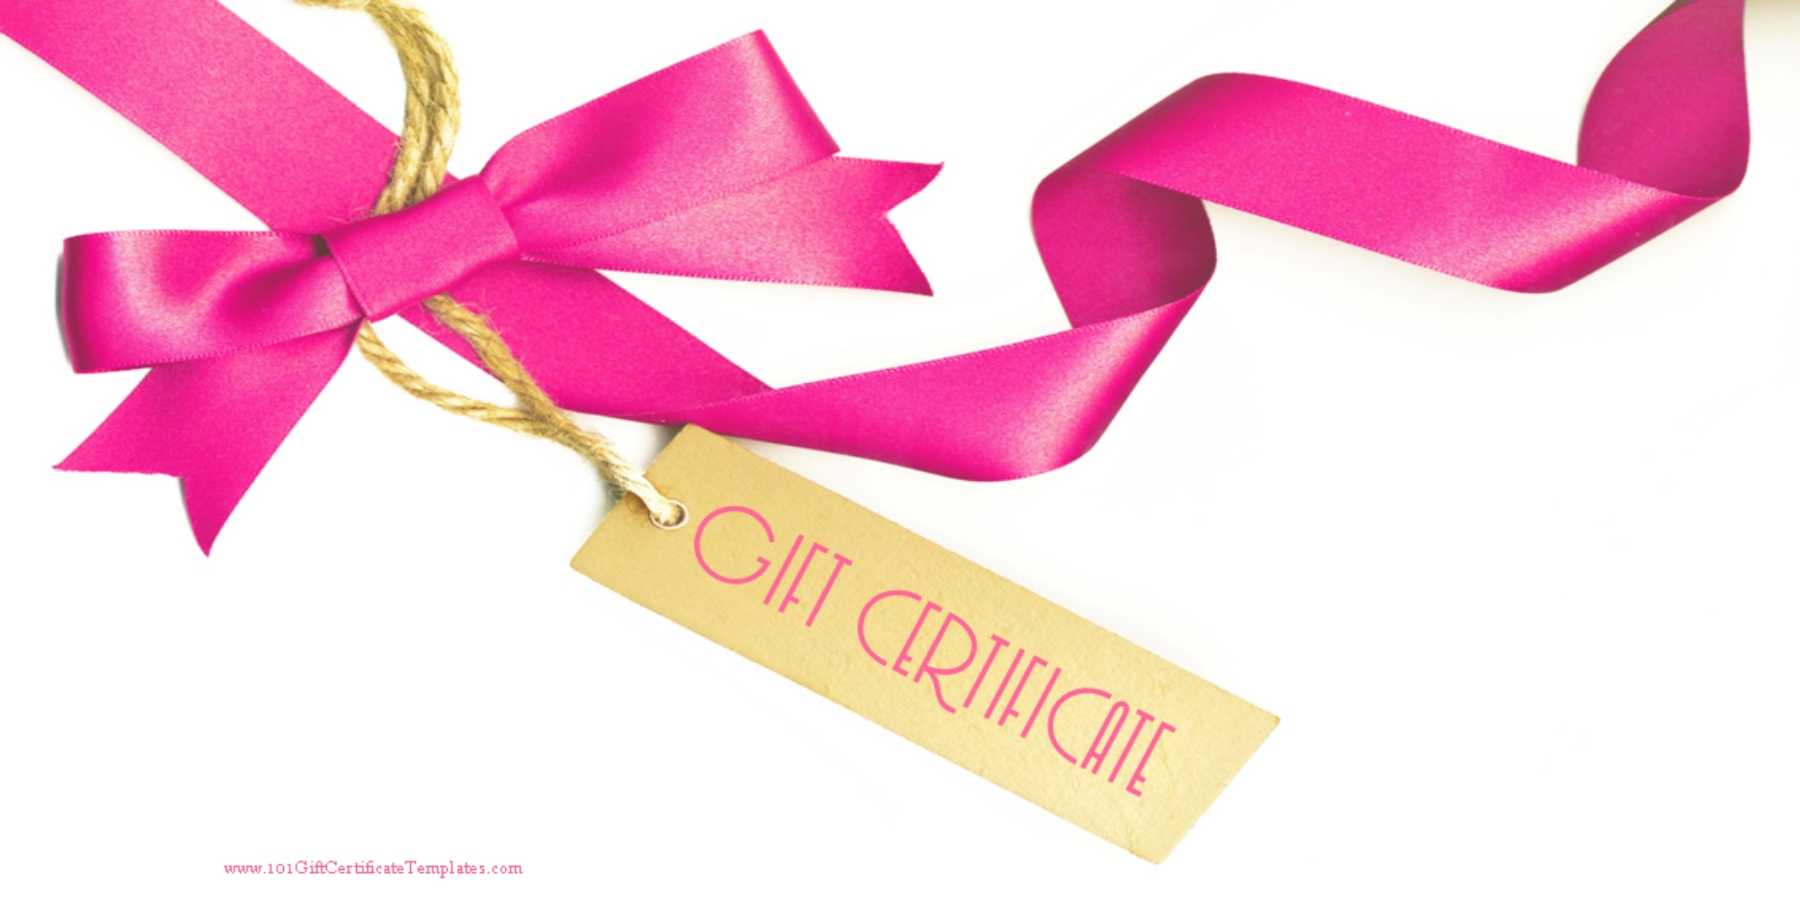 gift certificates rejuvenate in schoharie